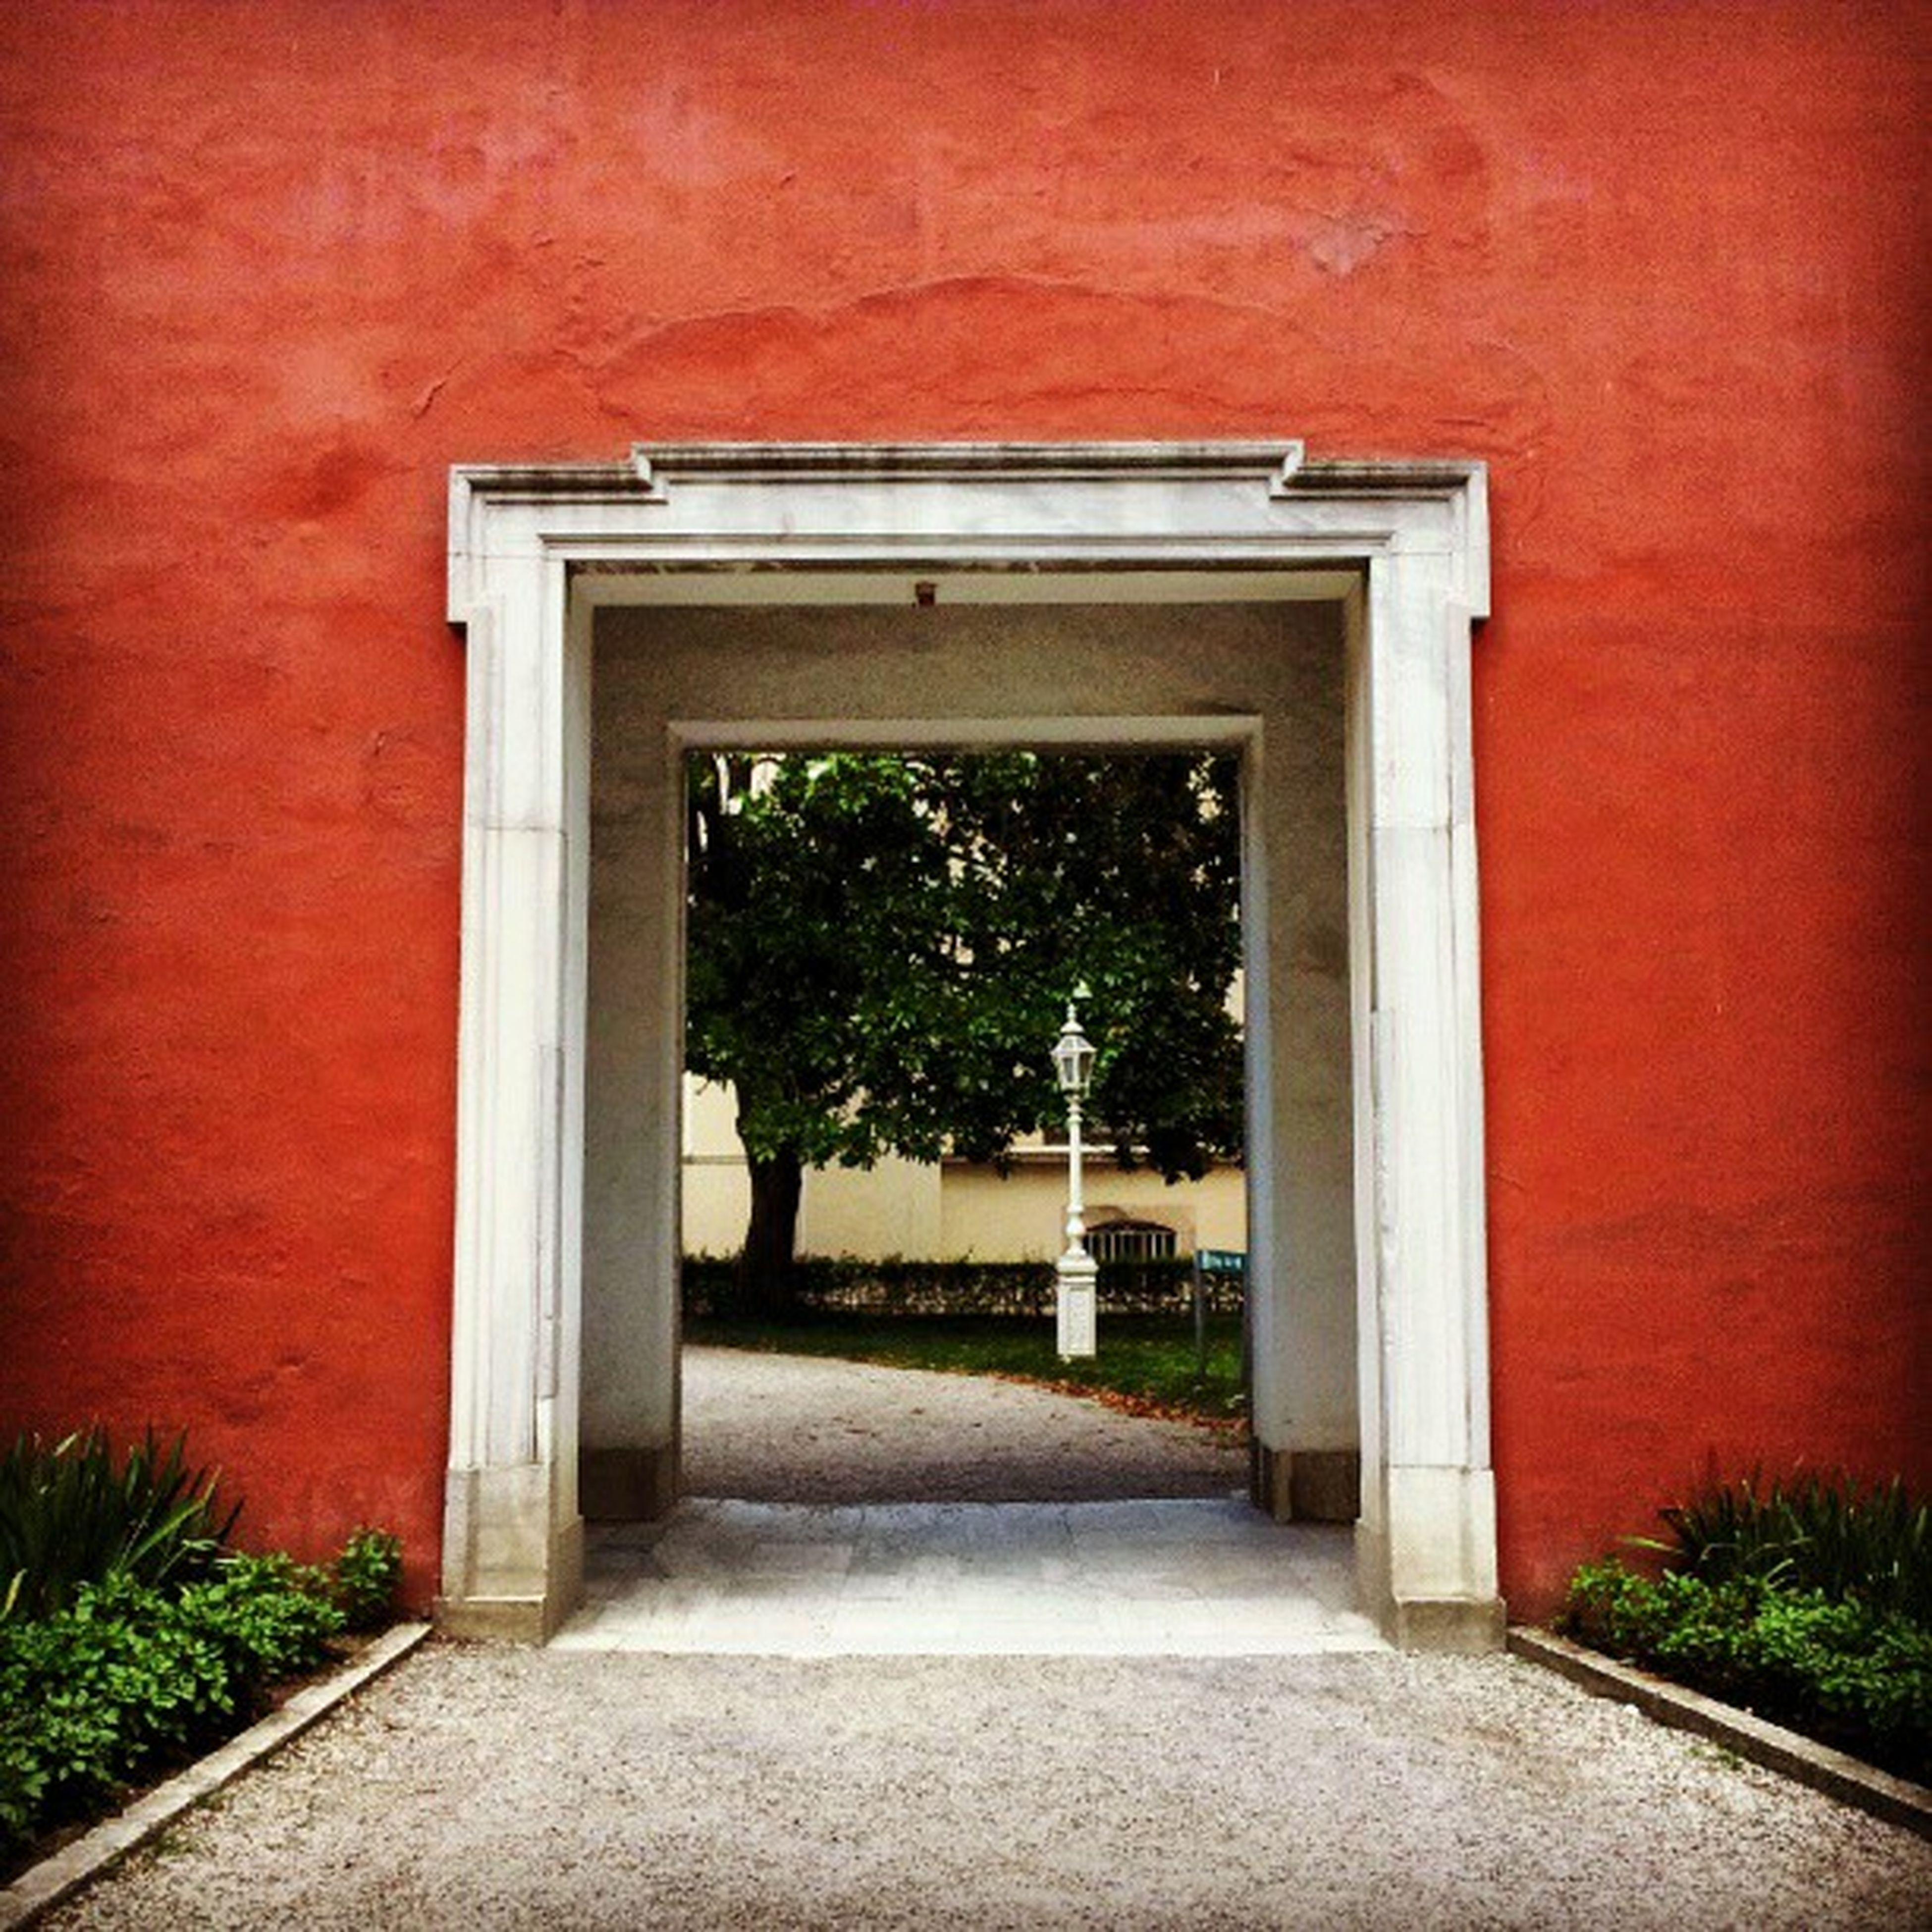 red, architecture, built structure, building exterior, door, closed, the way forward, entrance, tree, window, house, plant, day, wall - building feature, empty, no people, growth, outdoors, footpath, wall